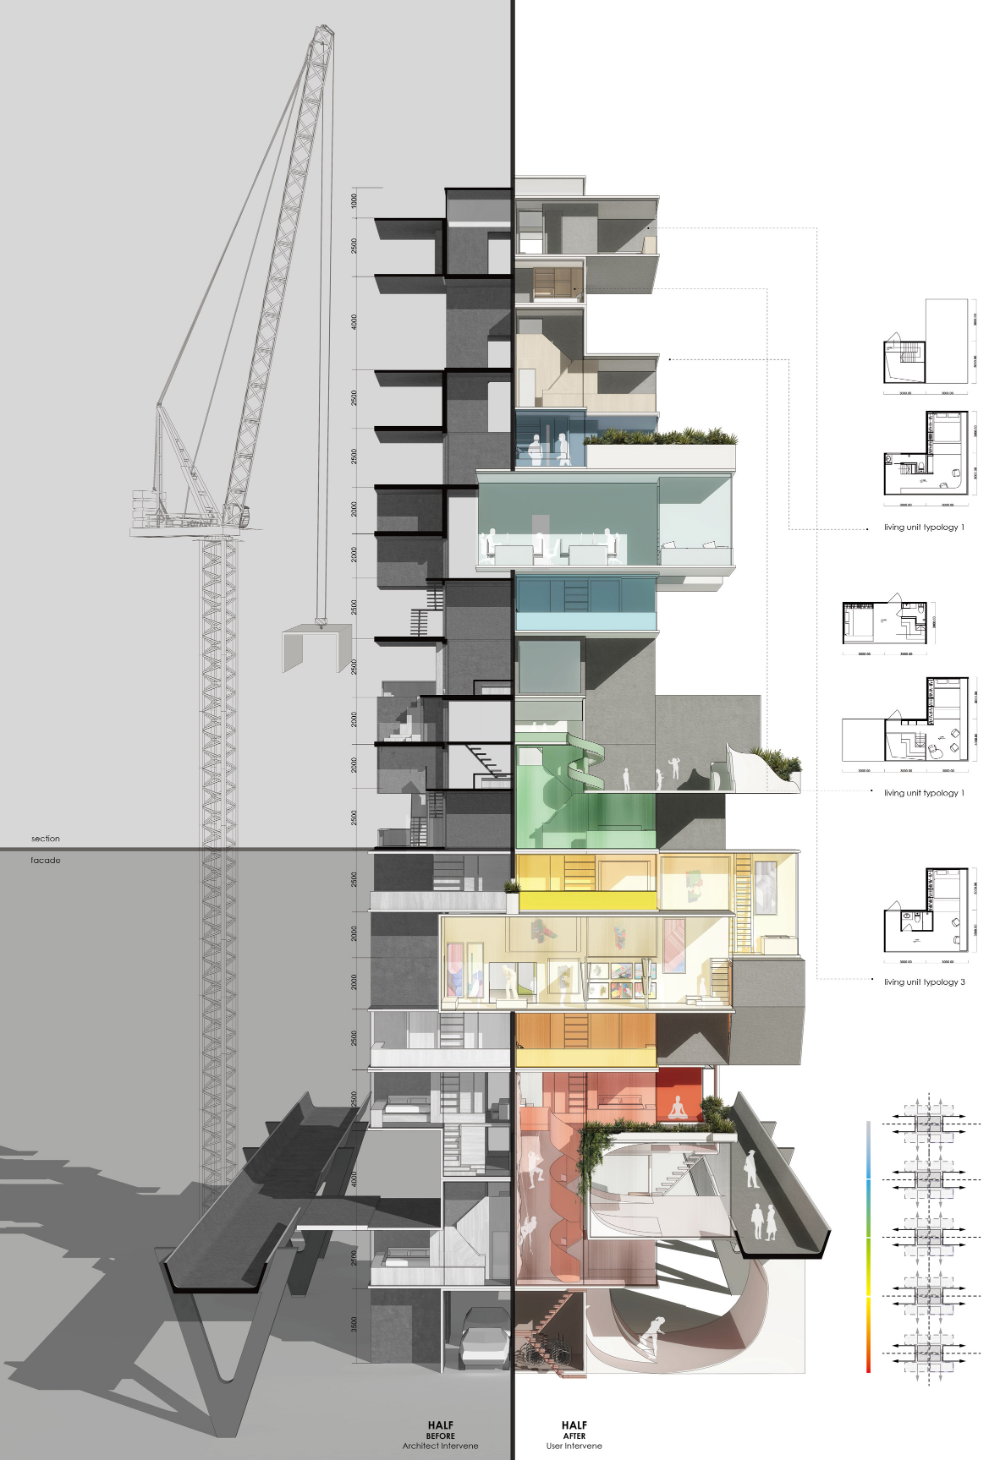 Lianjie Wu Designs Affordable Homes That Are Deliberately Left Unfinished Affordable Housing House Cost Architecture